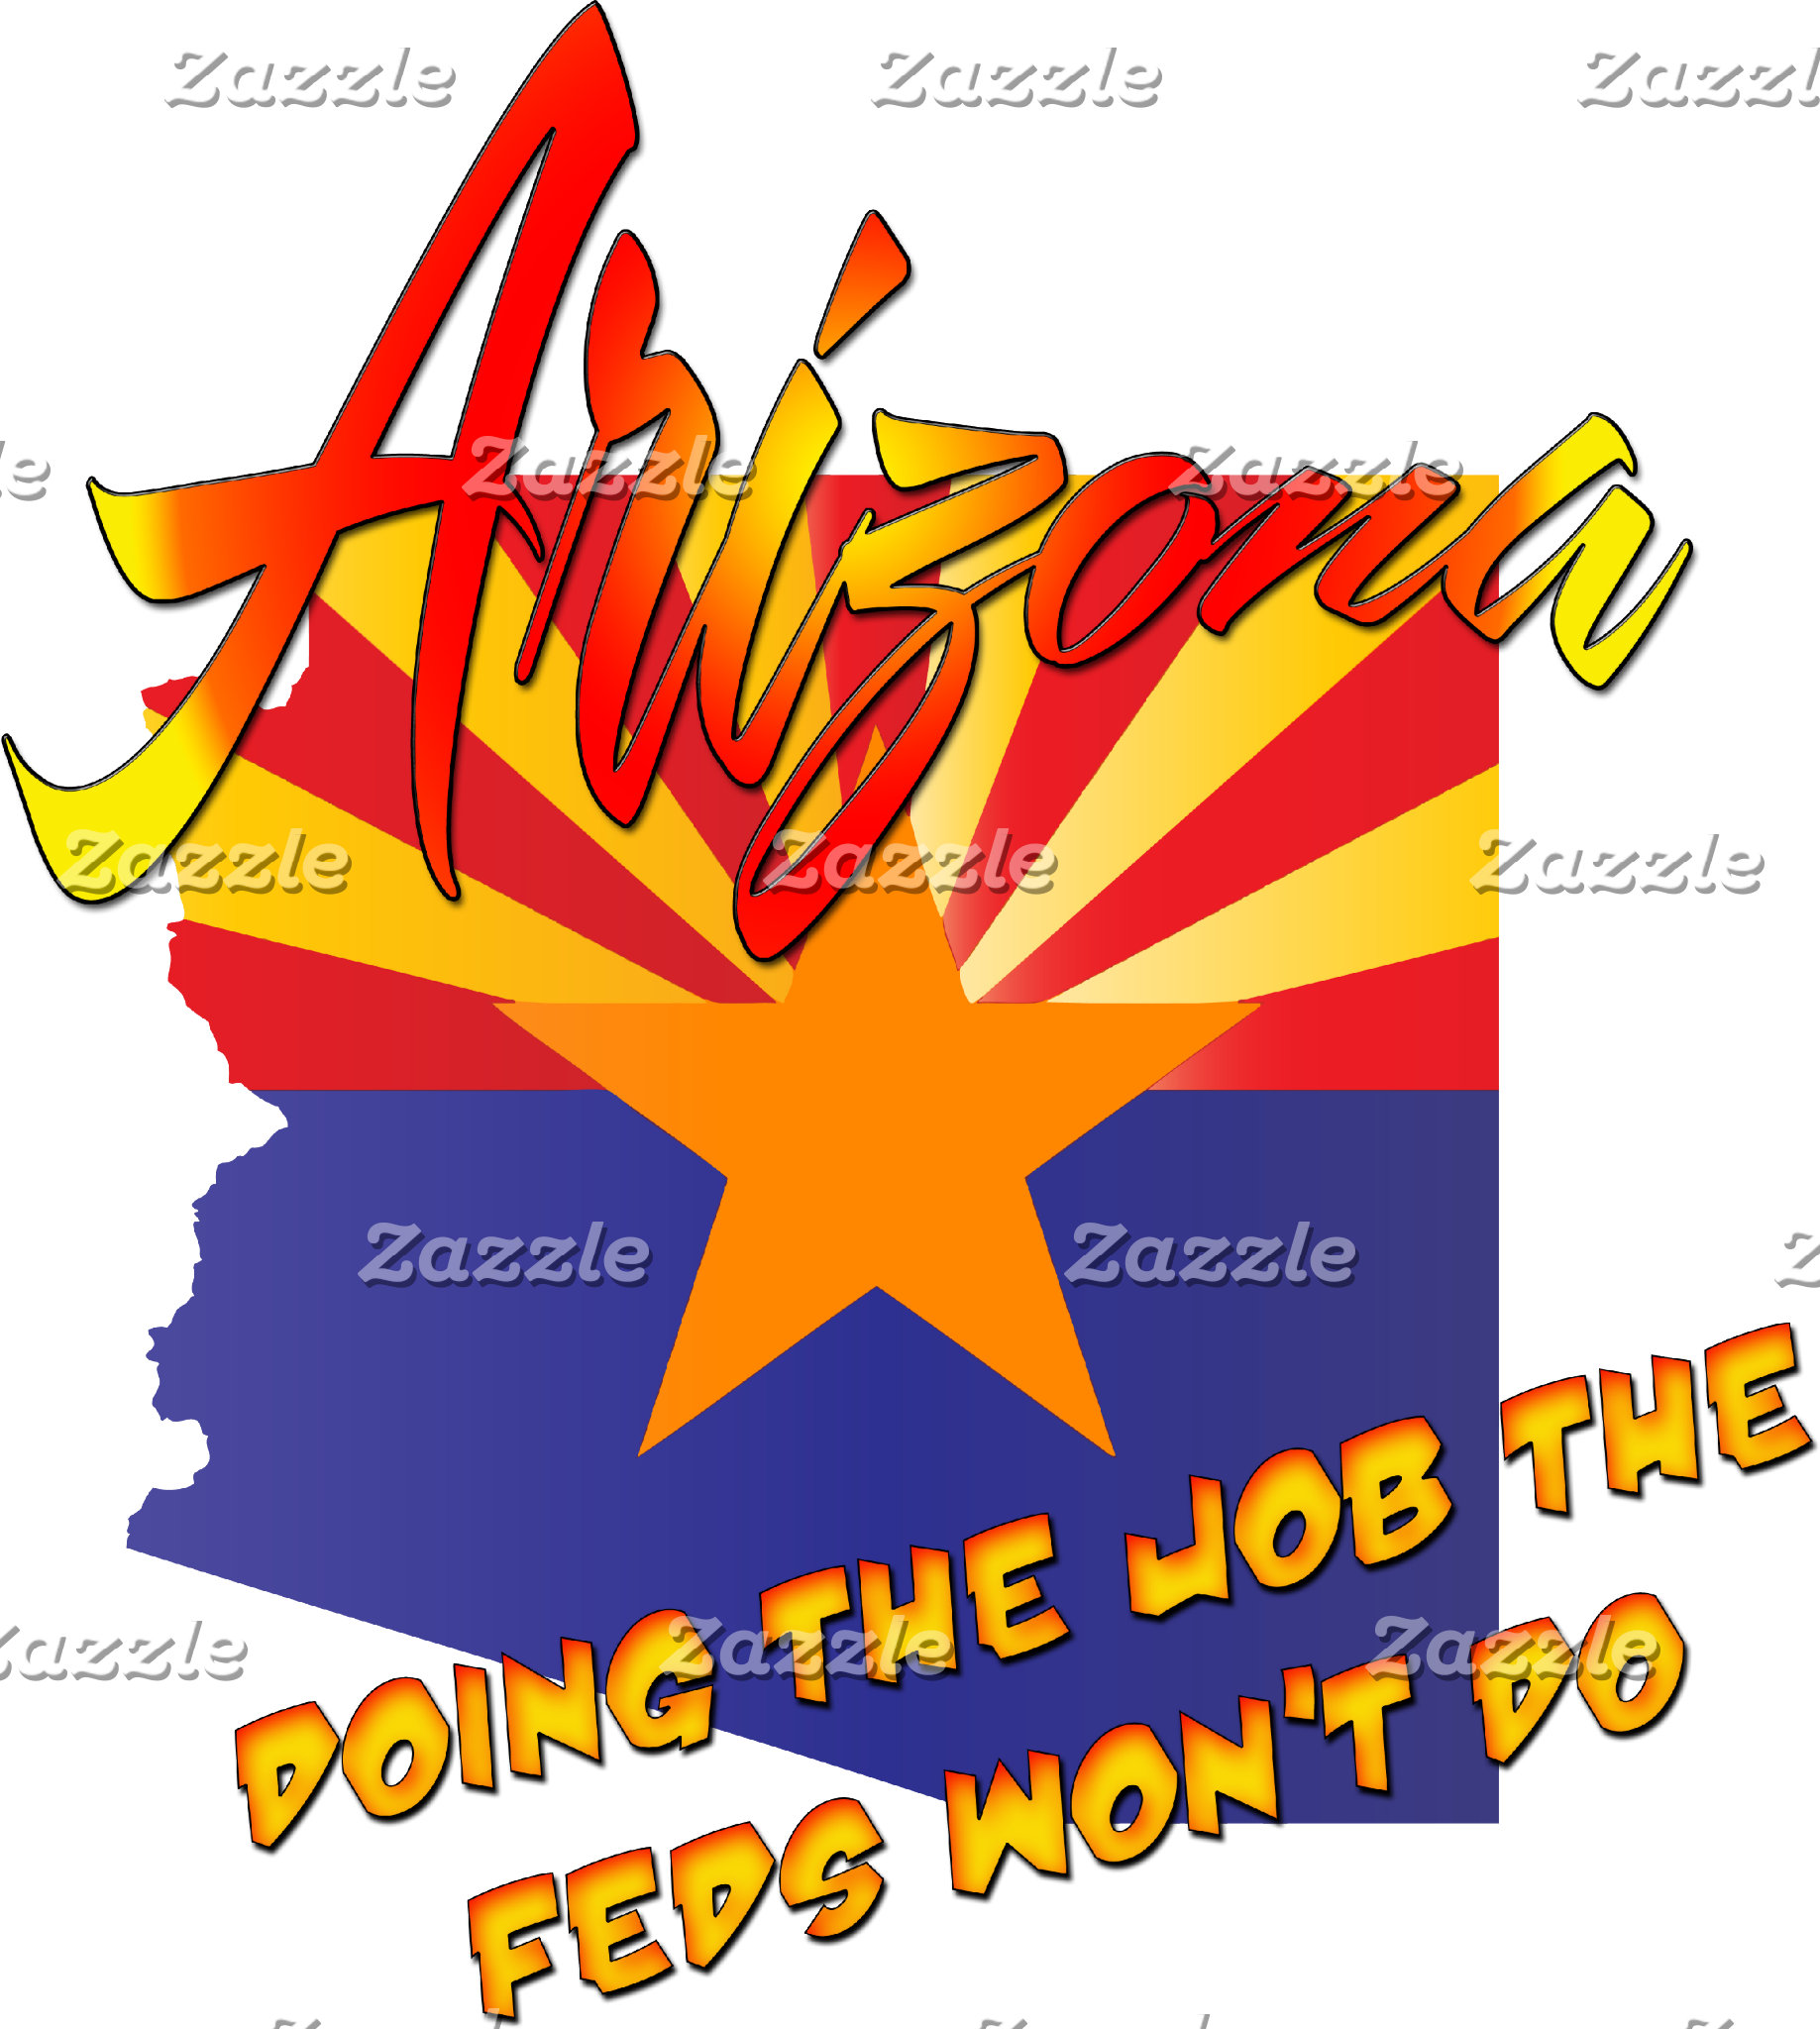 AZ Doing the Job